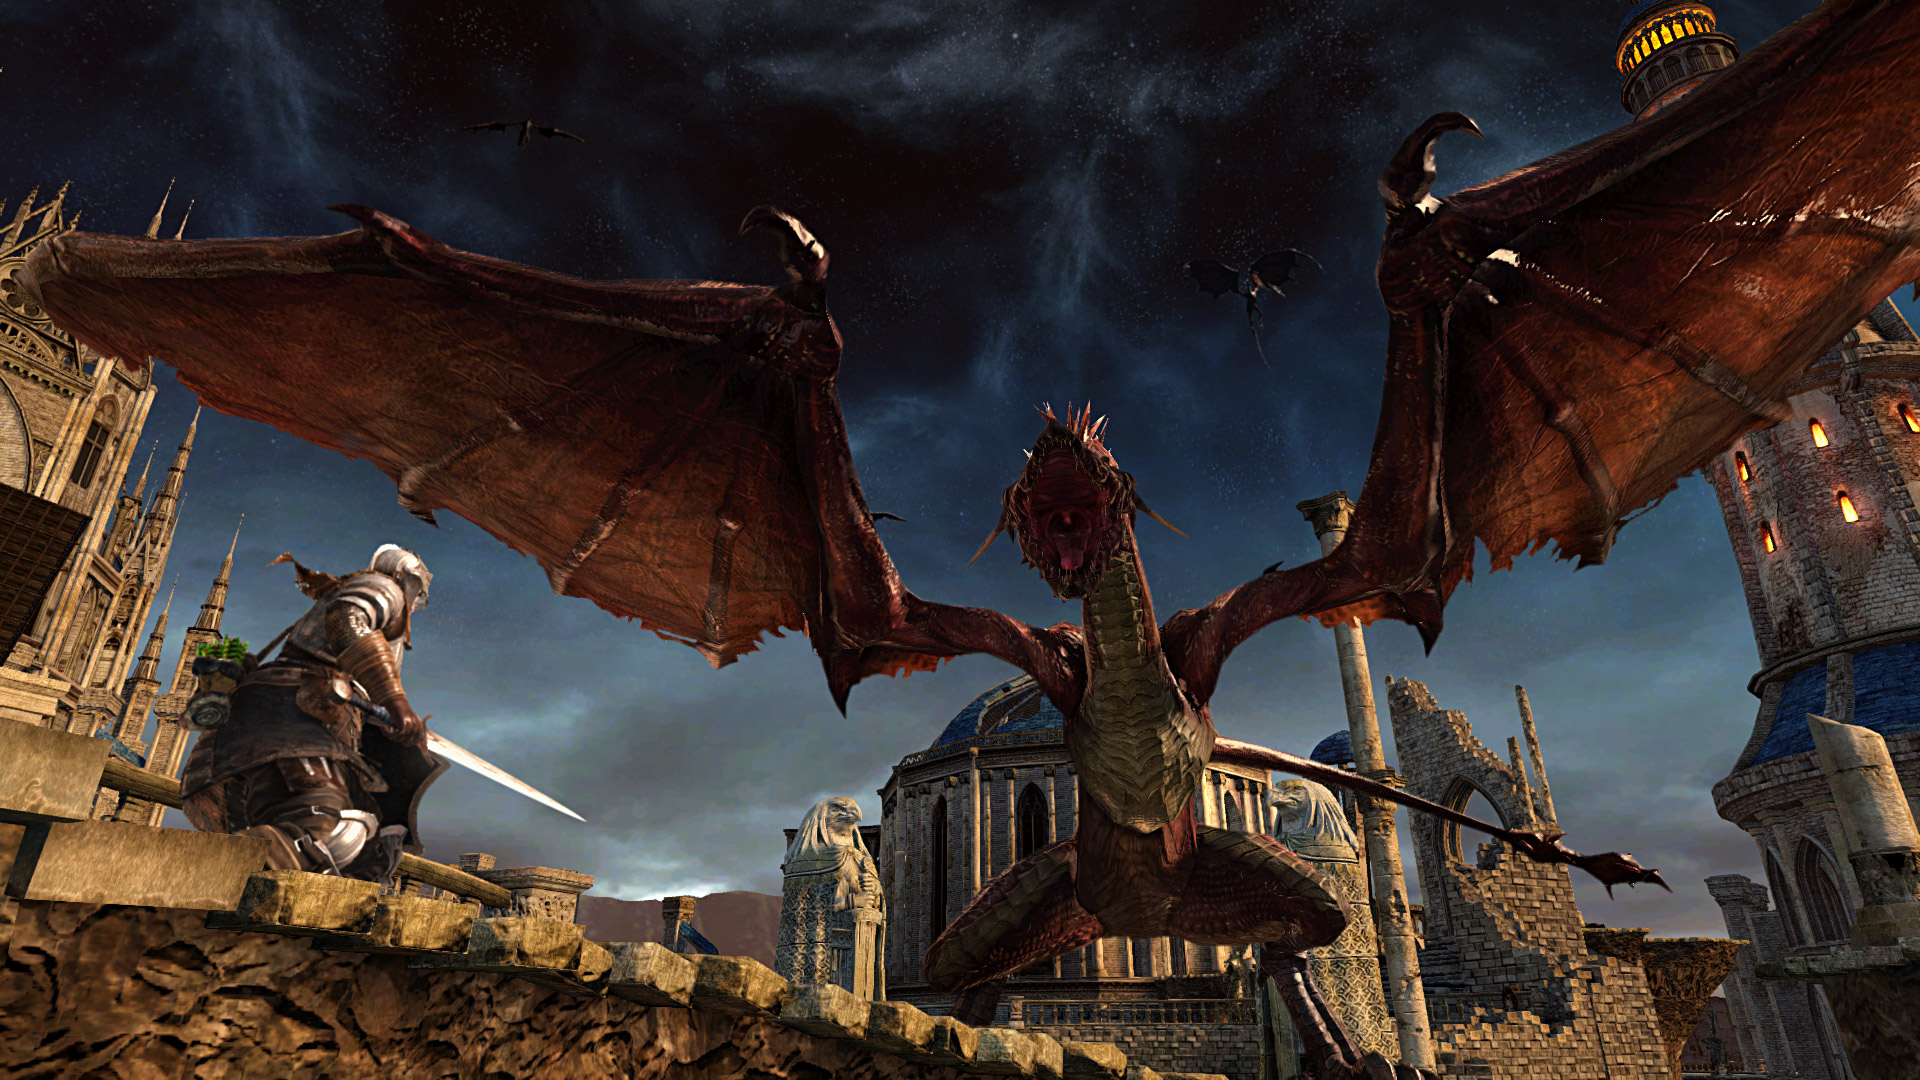 Dark Souls II is being reborn on next-gen consoles!